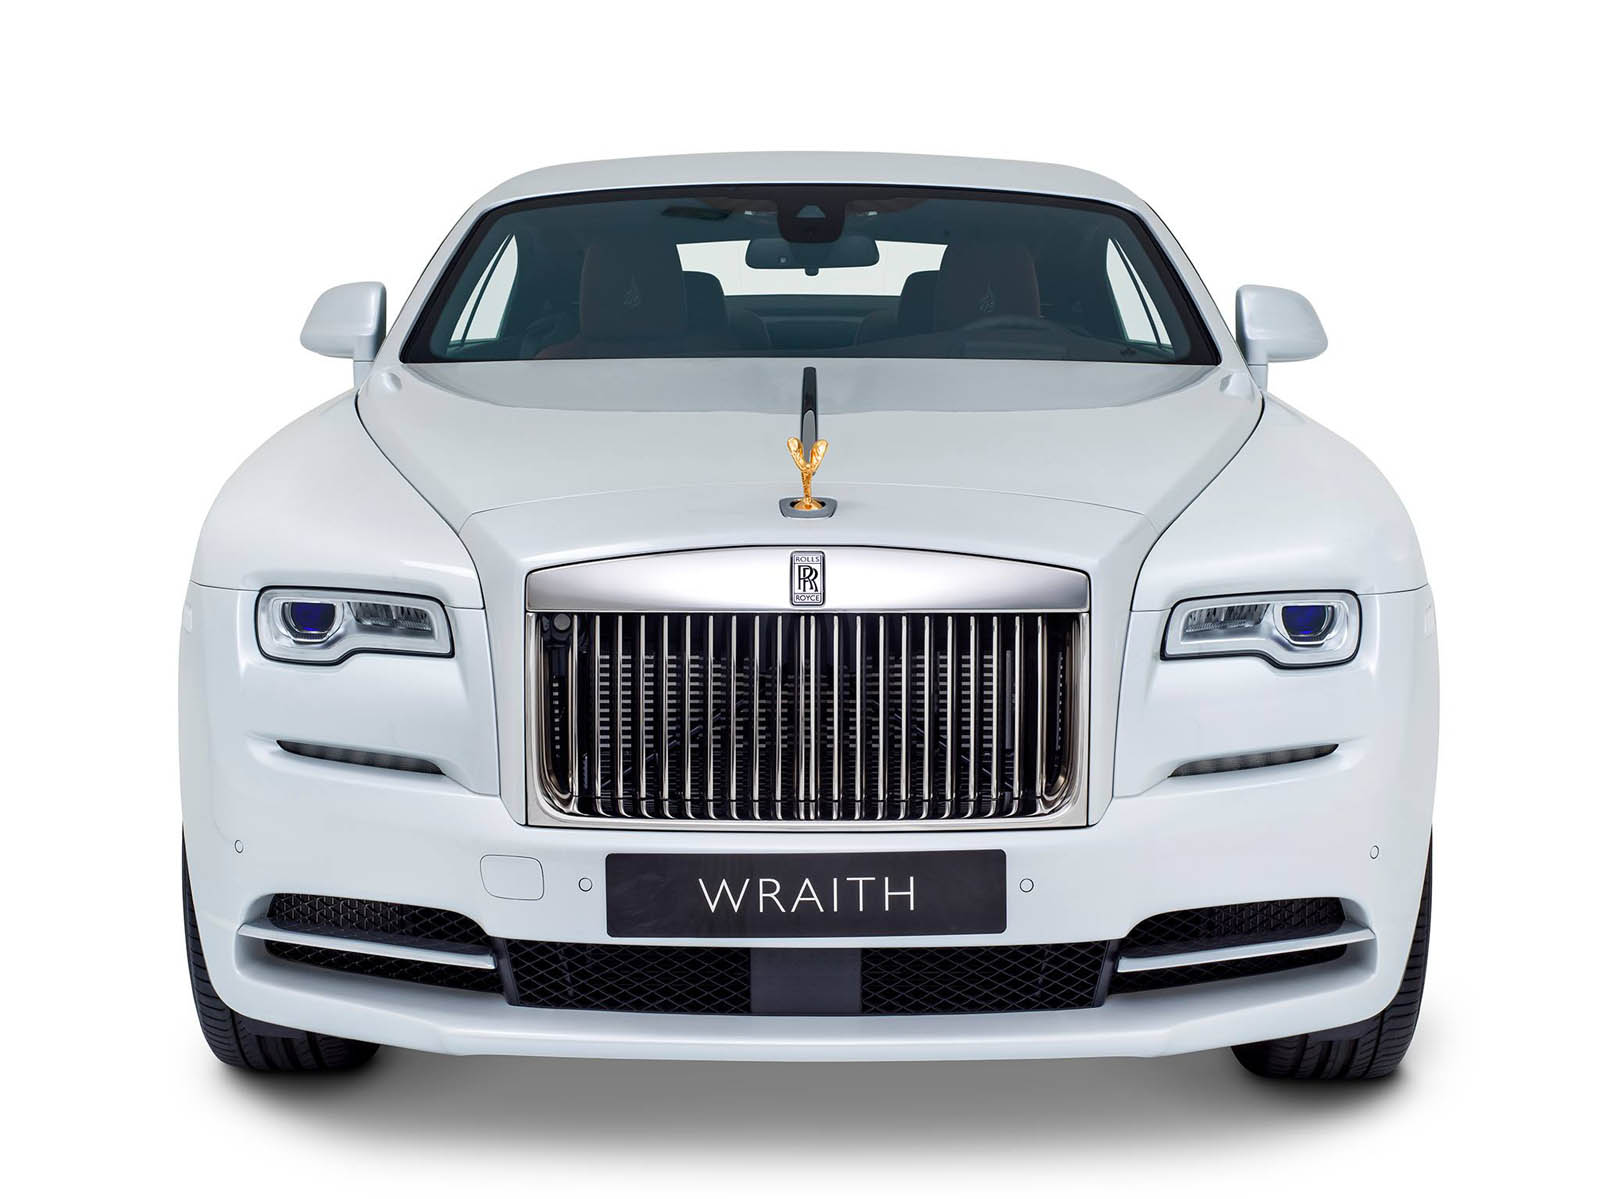 rolls-royce-Wraith-inspired-by-Falconry-11